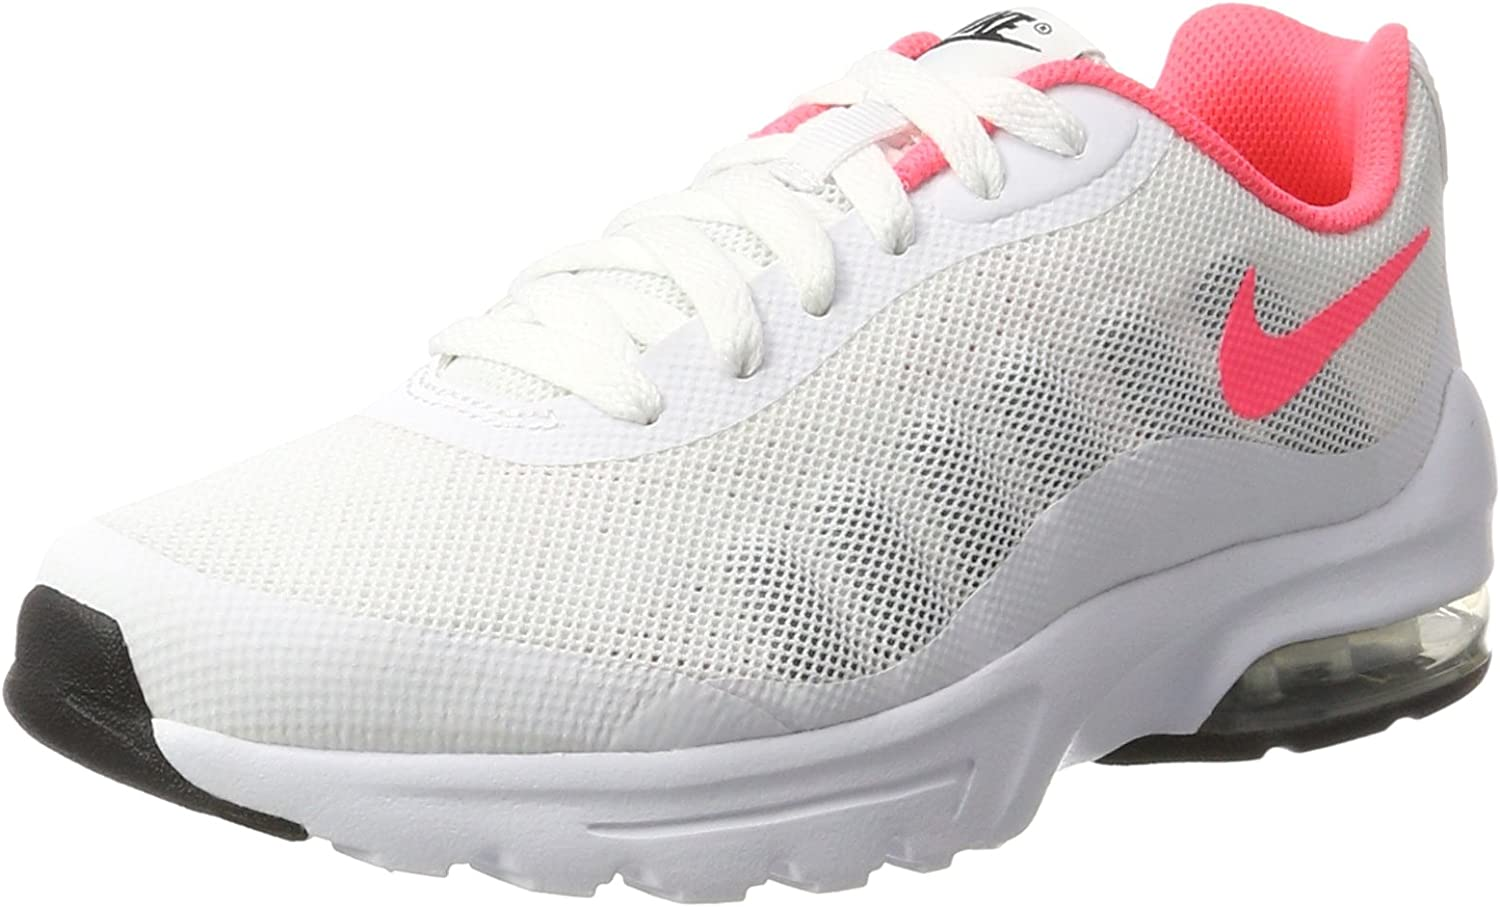 Nike Air Max Invigor GS Running Trainers 749575 Sneakers Shoes